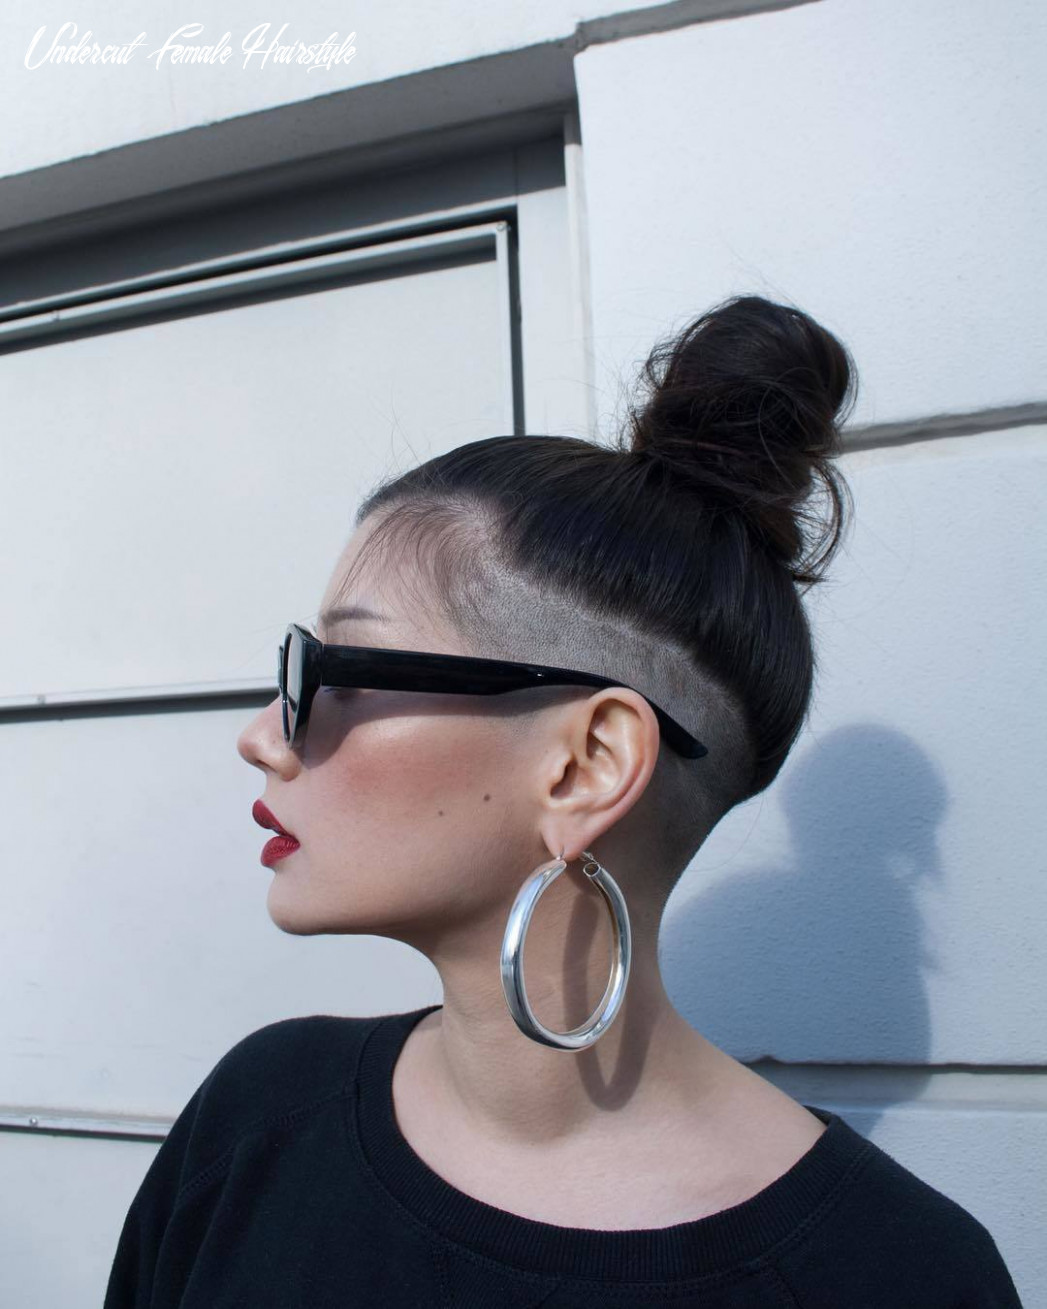 9 bold shaved hairstyles for women | shaved hair designs undercut female hairstyle